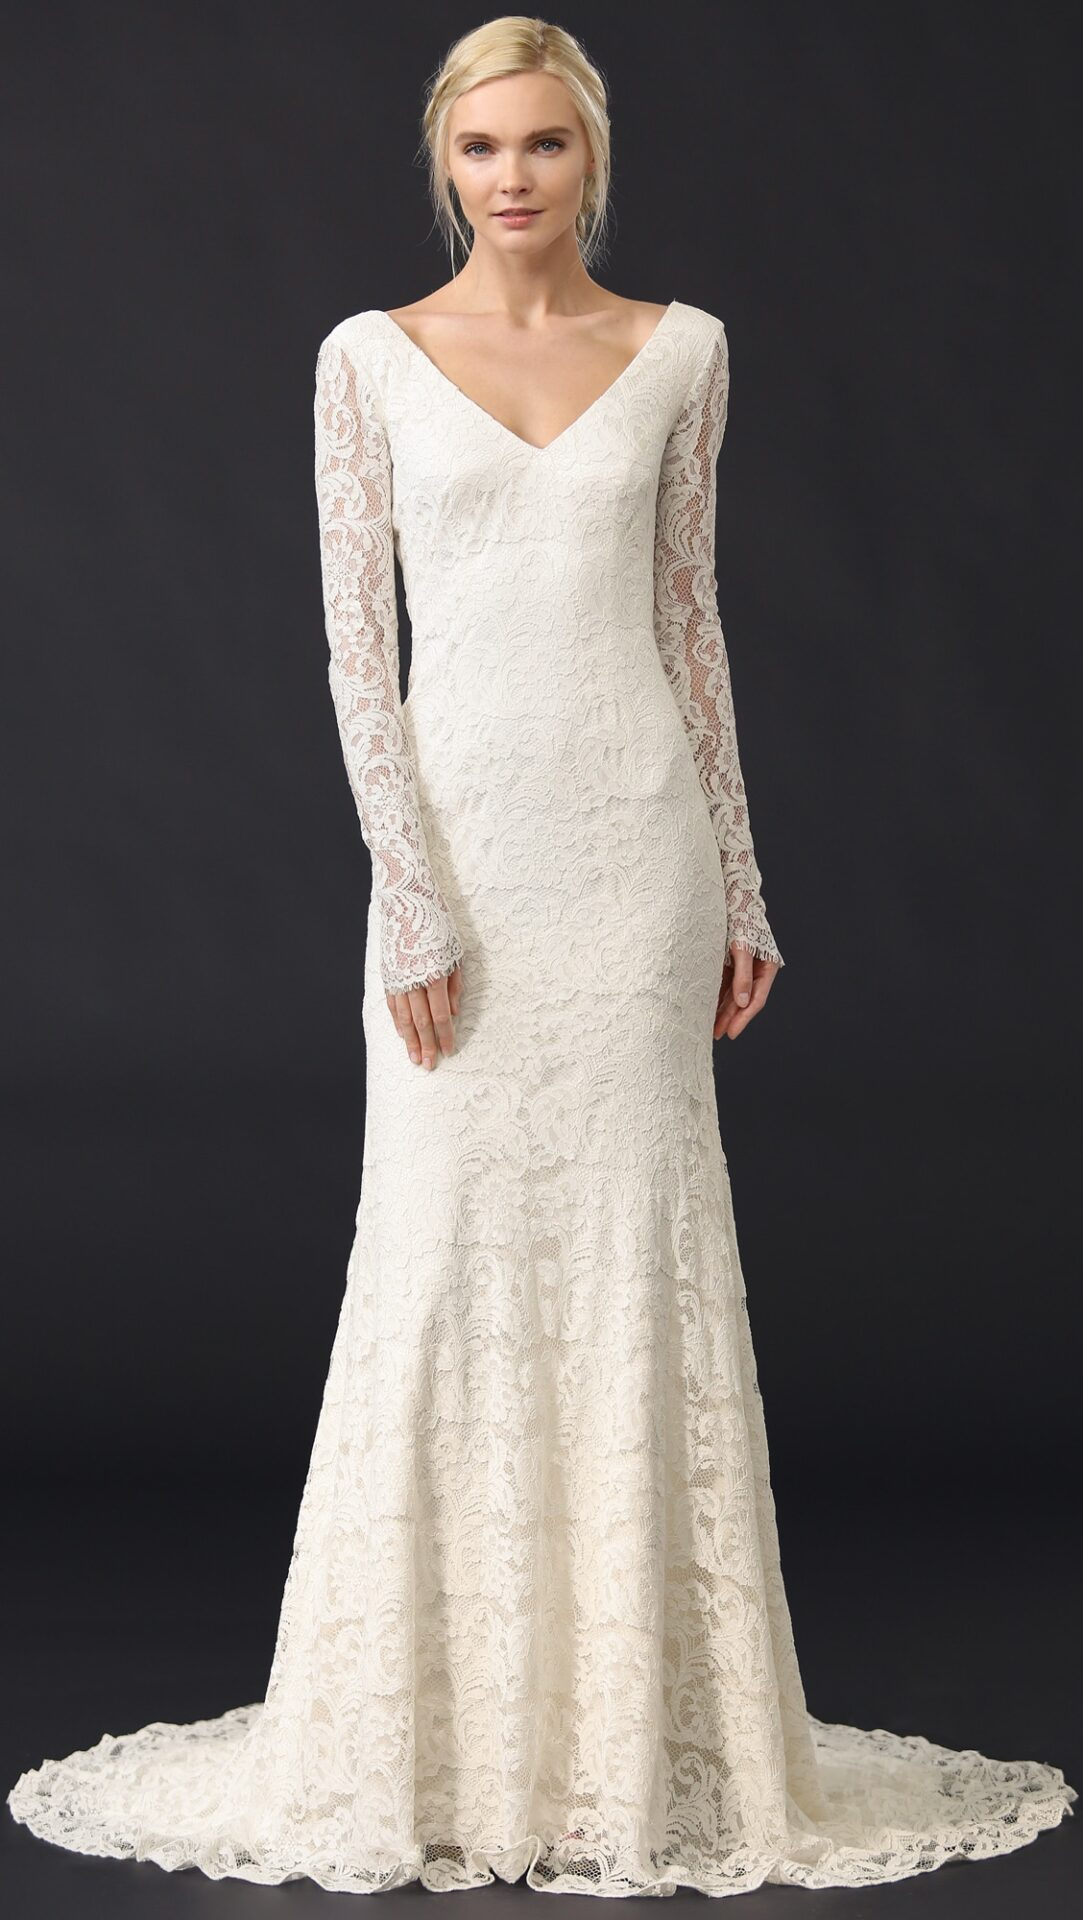 Theia Nicole Lace Gown